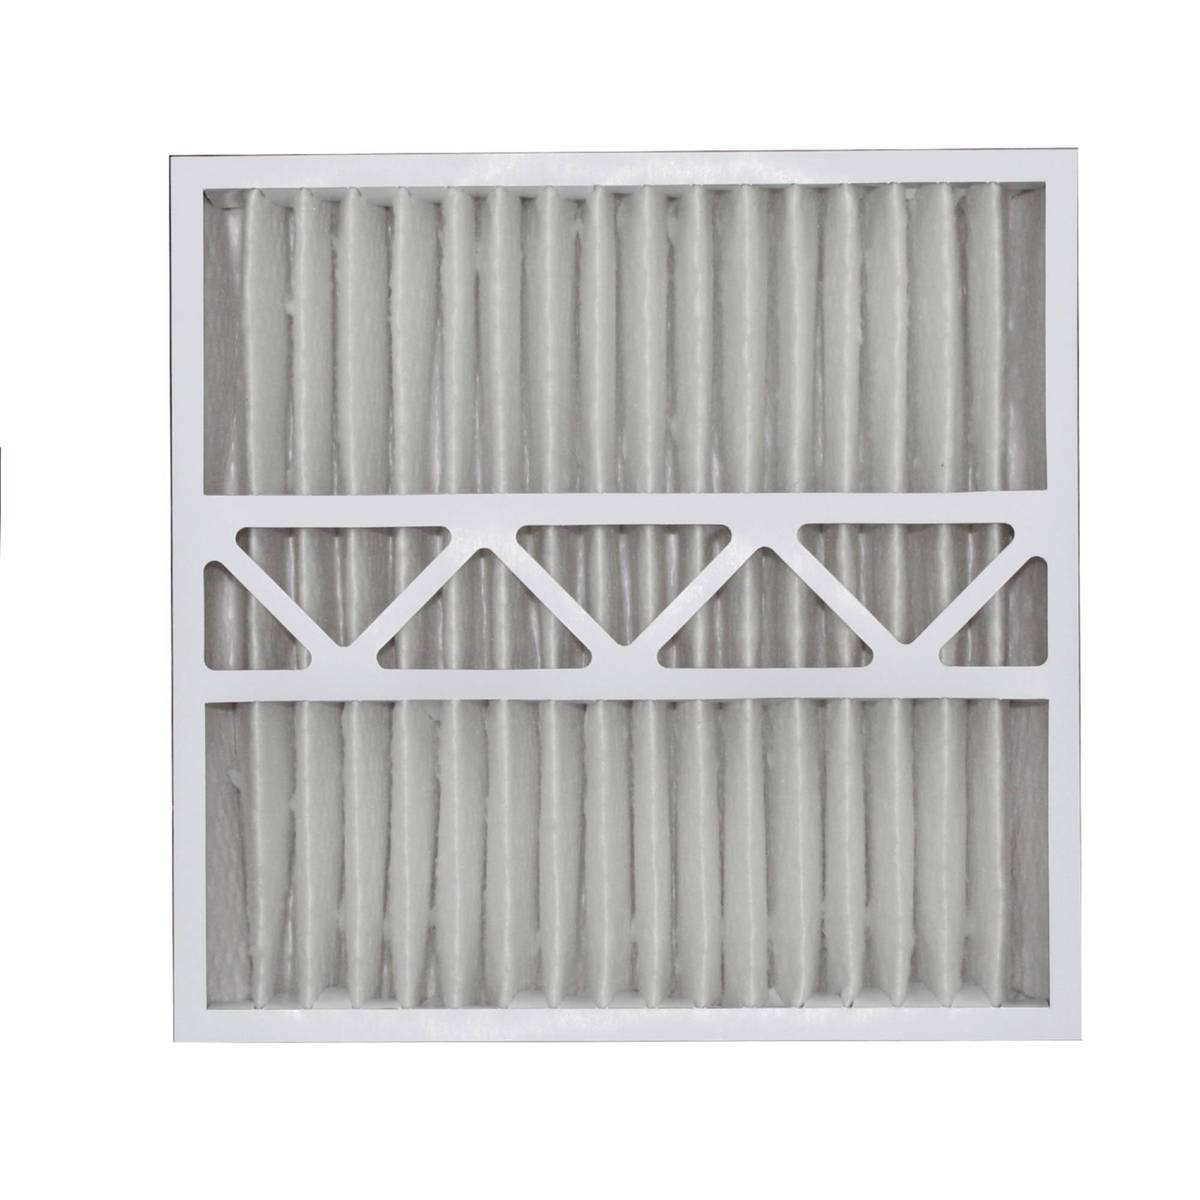 Tier1 Replacement for Carrier 20x25x5 Merv 11 MF2025 / M8-1056 Air Filter 2 Pack